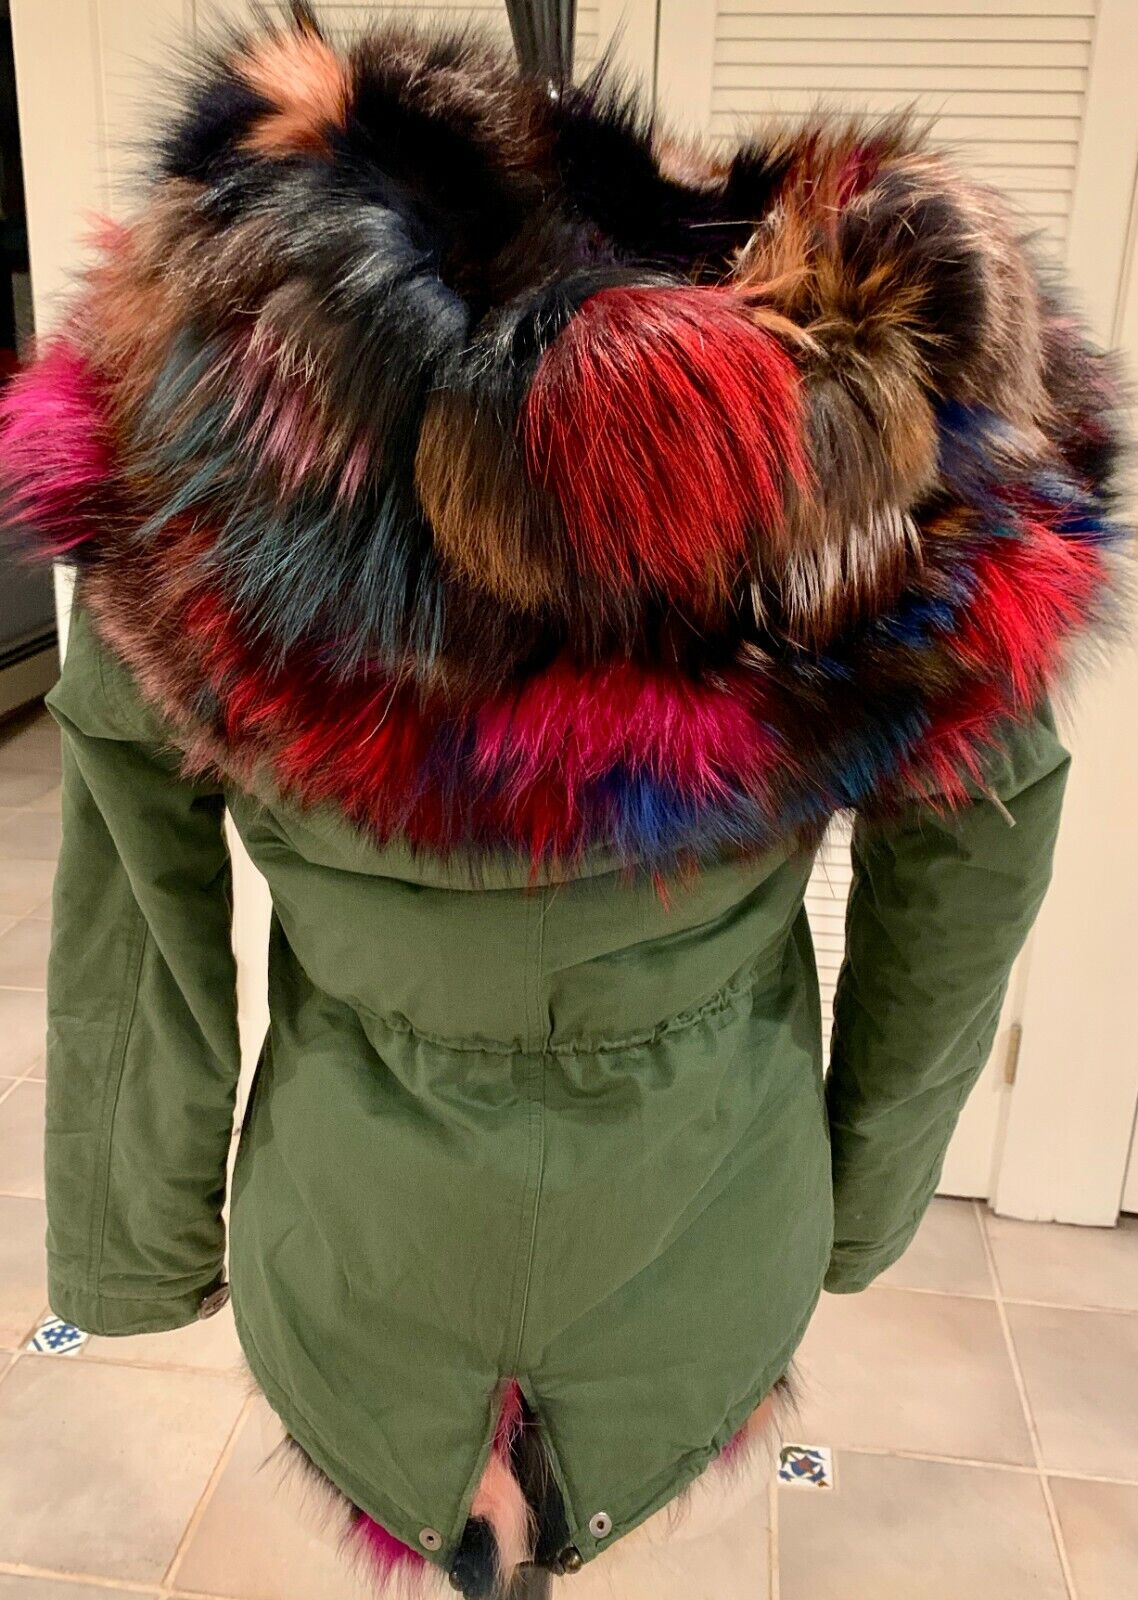 D. Damiani NY Multi-Color Fur Lined Coat Small - image 4